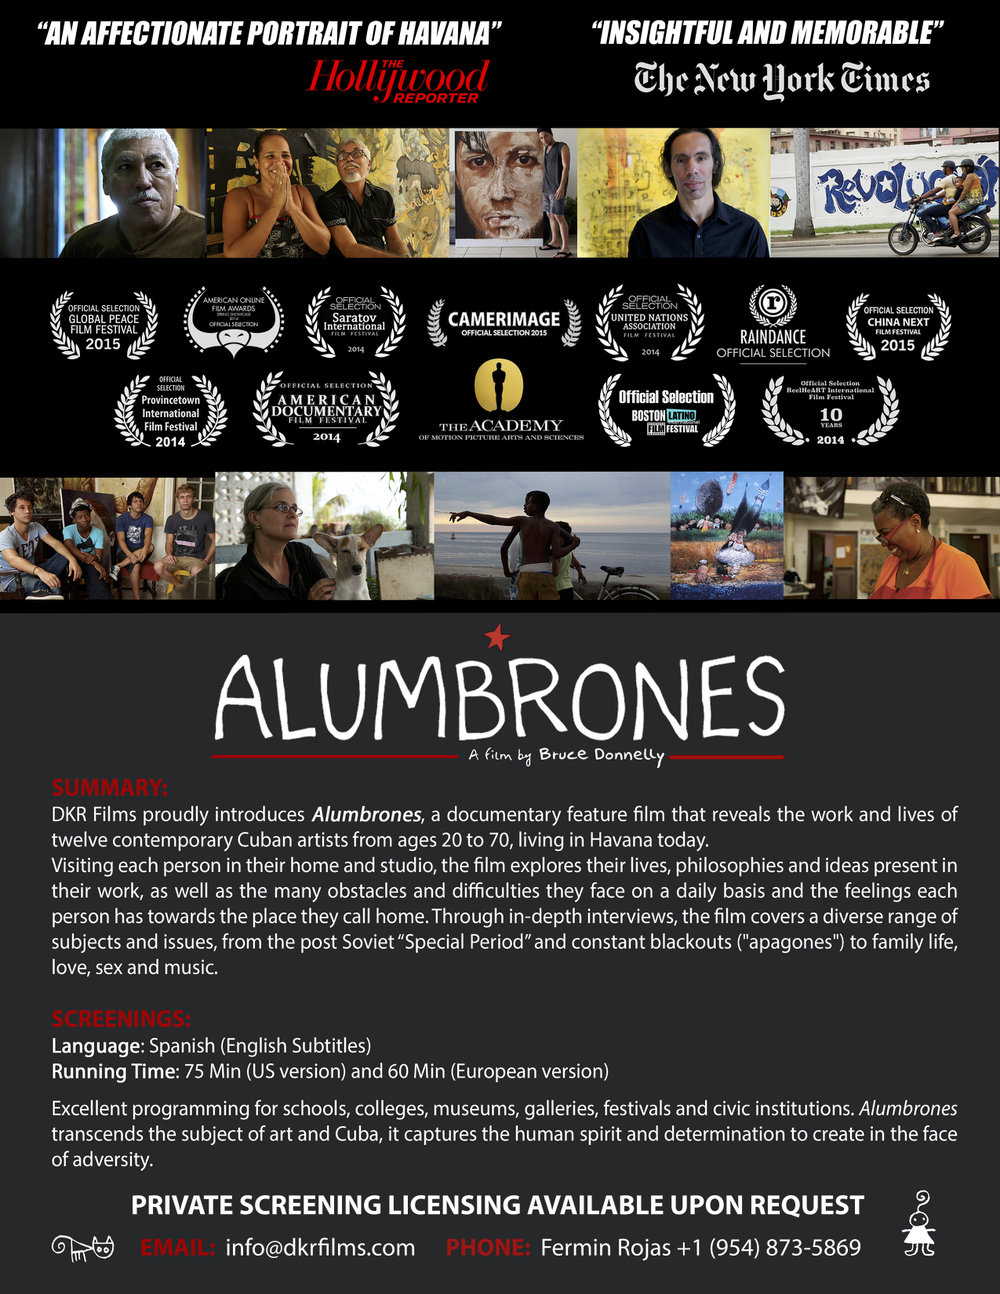 ALUMBRONES - PRIVATE SCREENINGS